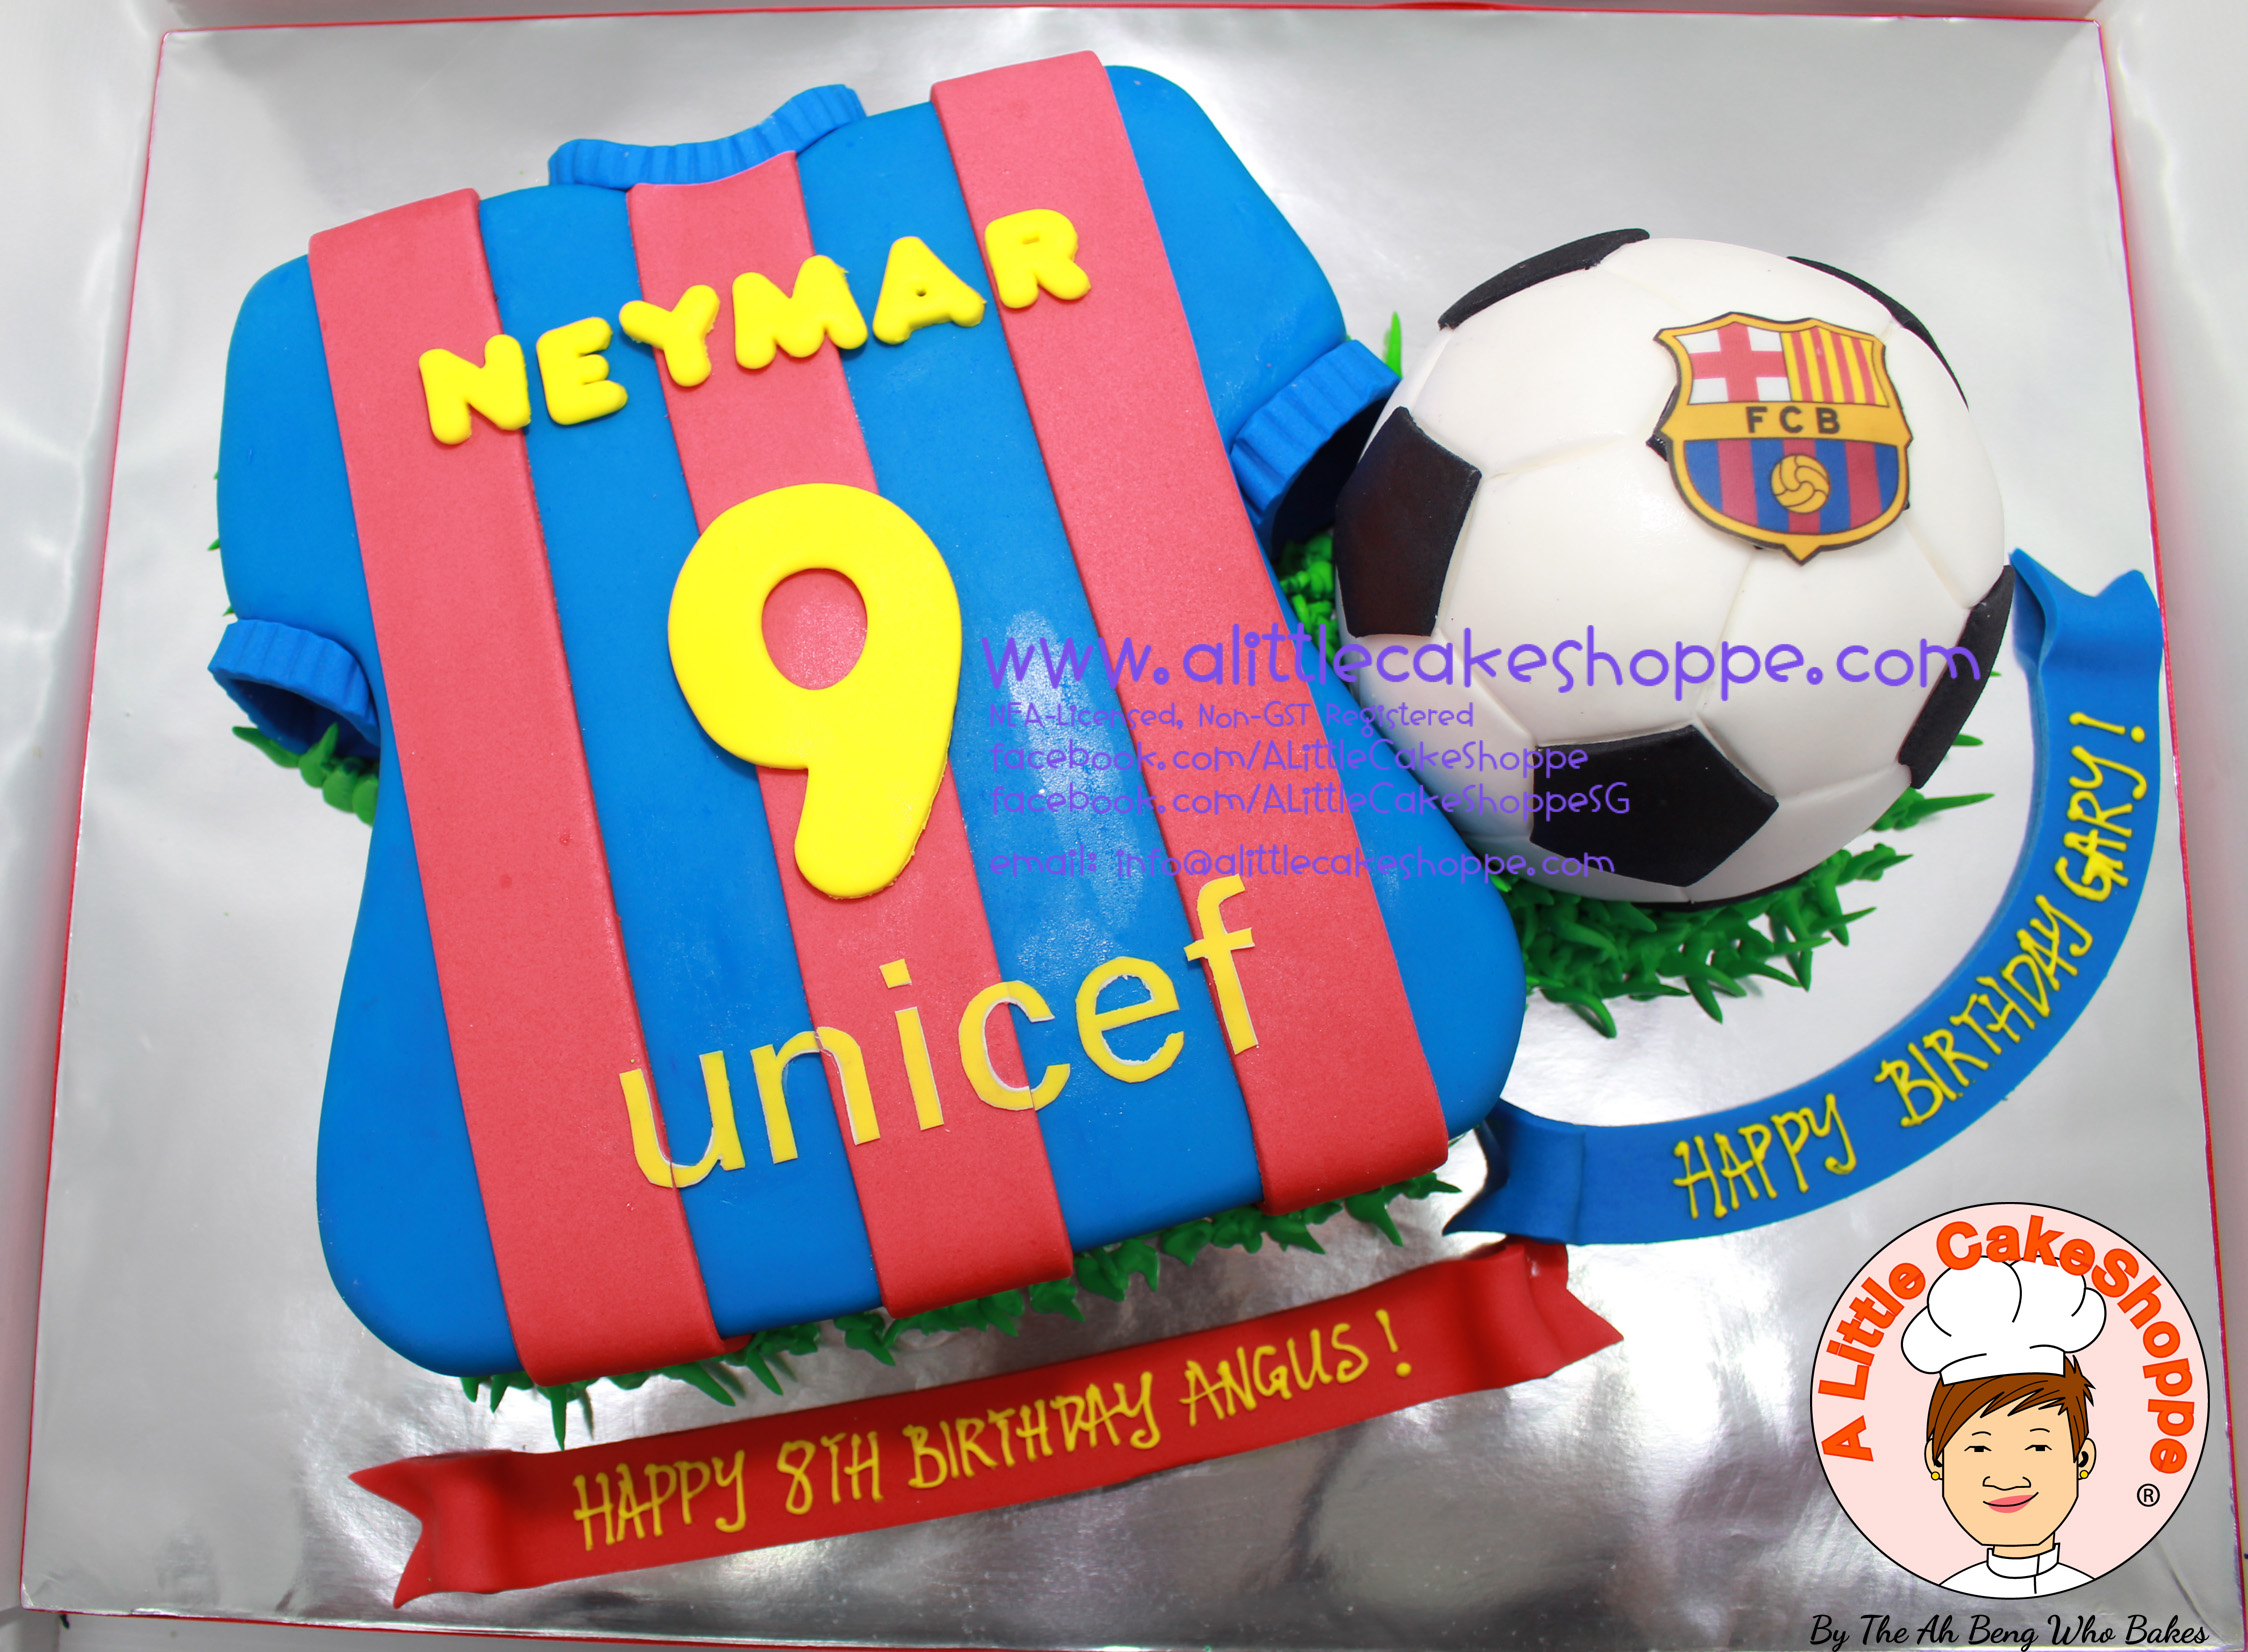 Best Customised Cake Singapore custom cake 2D 3D birthday cake cupcakes desserts wedding corporate events anniversary 1st birthday 21st birthday fondant fresh cream buttercream cakes alittlecakeshoppe a little cake shoppe compliments review singapore bakers SG cakeshop ah beng who bakes sports soccer football